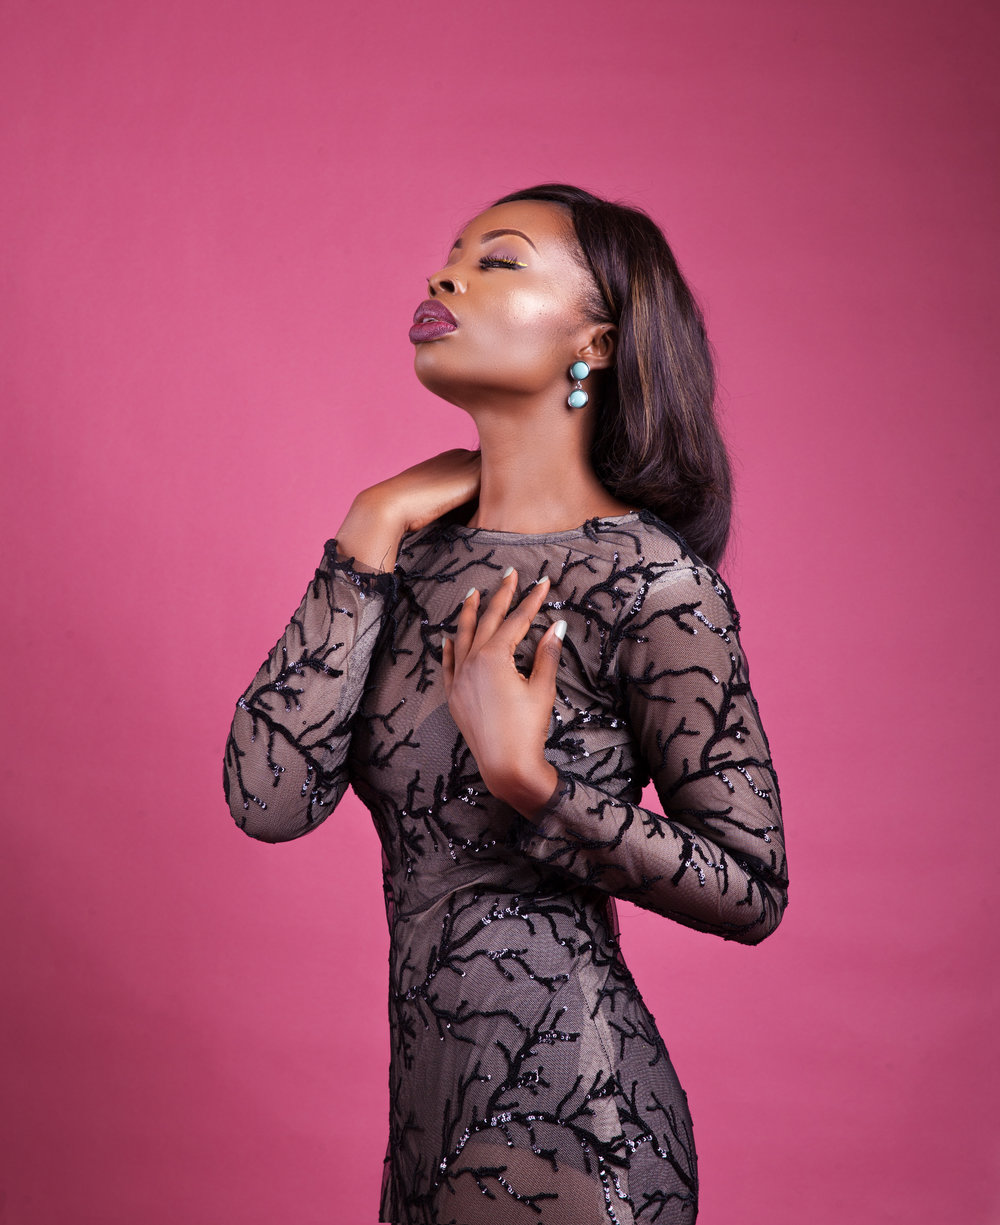 Jewellery Brand – Bland2Glam I @bland2glam    Photography – Paul Ukonu I @paulukonu    Creative Direction & Styling – Fierce and Modish Ltd I @msmodish @fierceandmodish    Make Up – Wemimo Ajibulu I @mua_weezy    Hair Styling – Vaavavoom Styles I @vaavavoomstyles